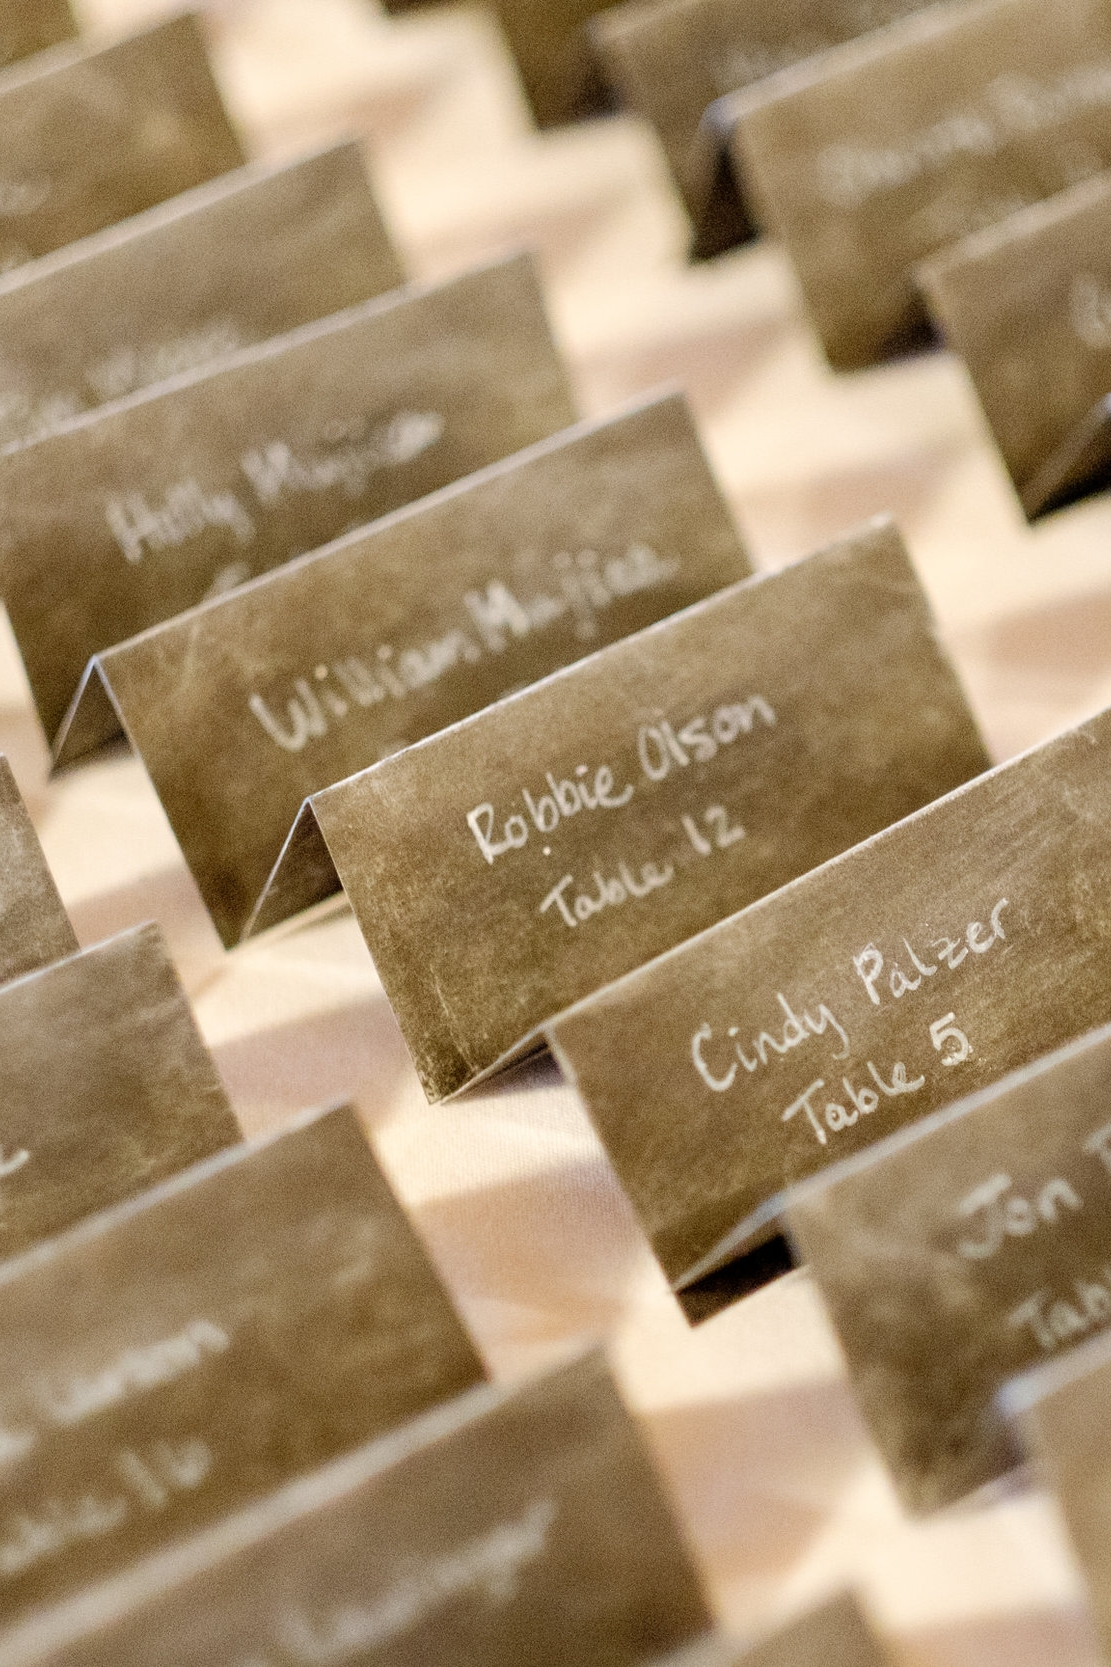 wedding seating tags at Cragun's resort in brainerd, mn